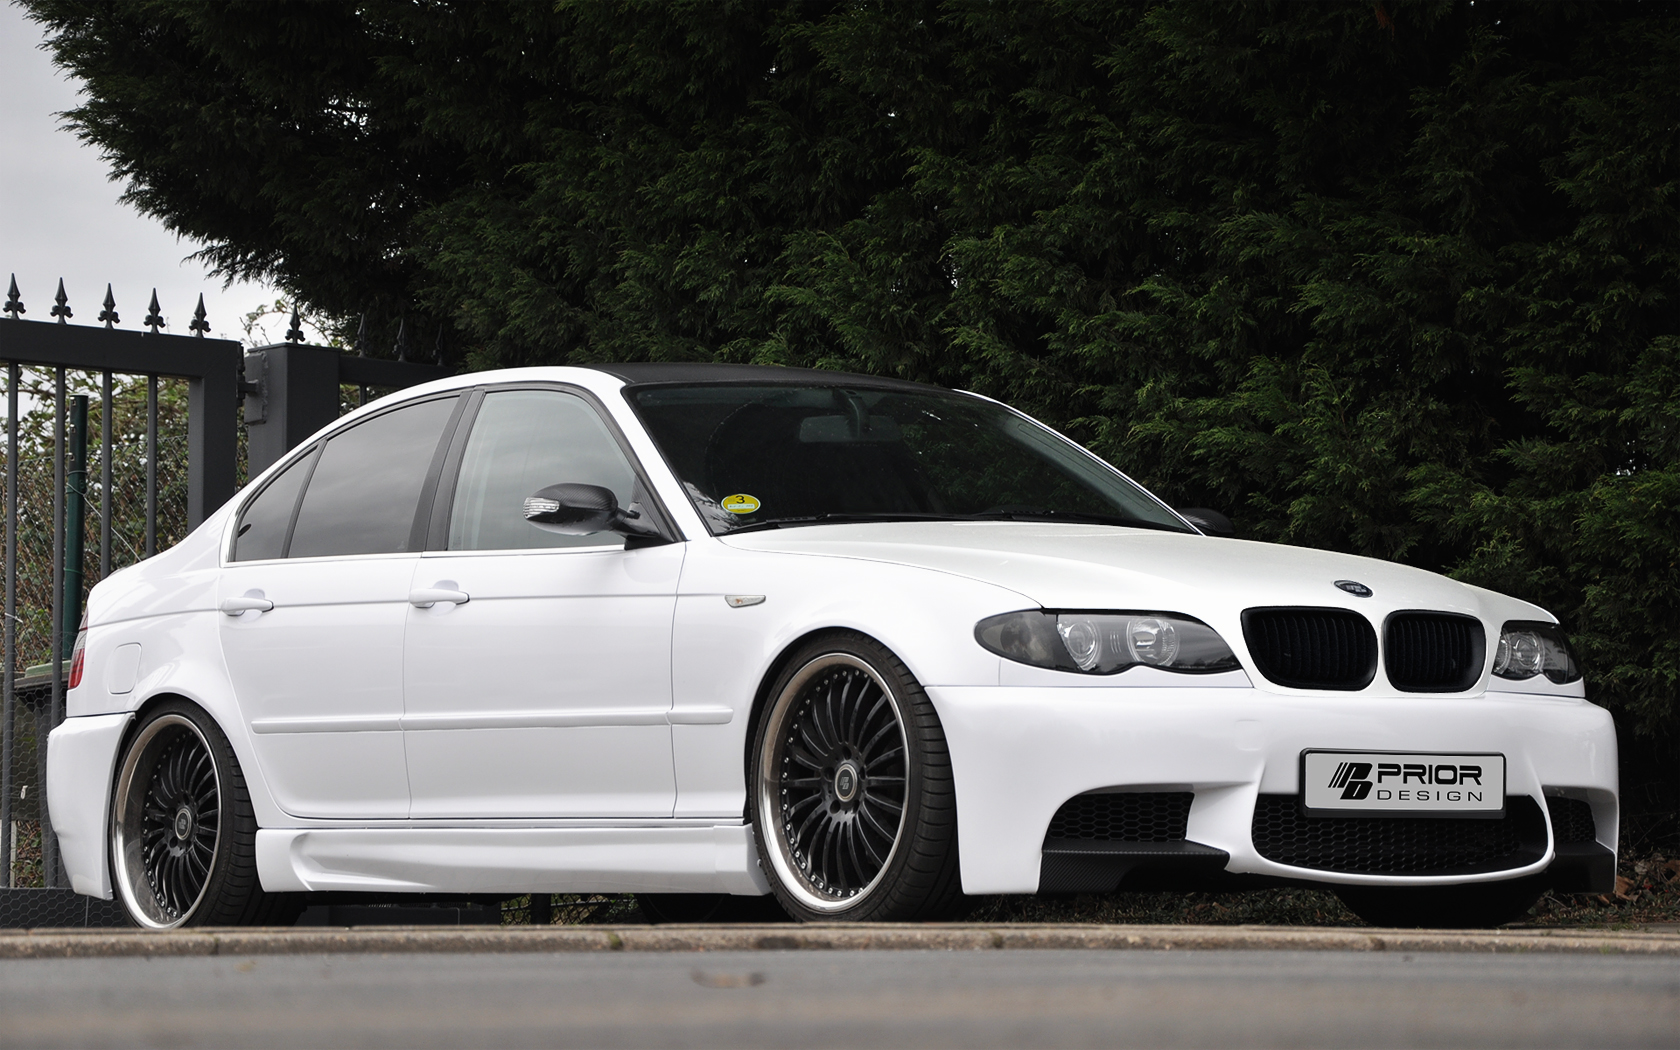 prior design 39 s kit brings bmw e90 m3 bumpers to e46 sedans autoevolution. Black Bedroom Furniture Sets. Home Design Ideas